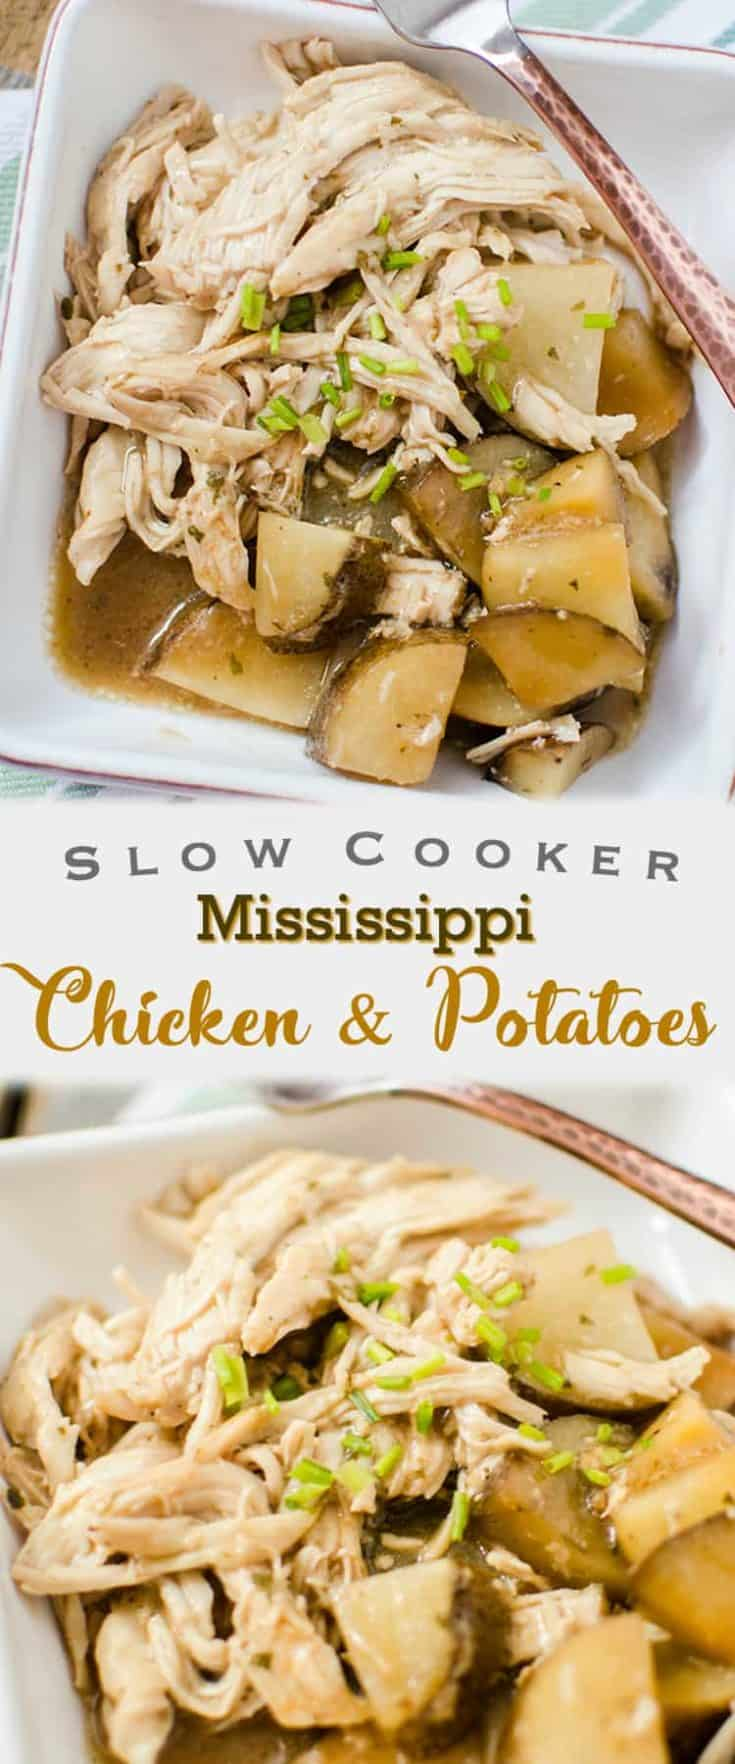 The star ingredients of this Slow Cooker Mississippi Chicken and Potatoes recipe is butter, ranch dressing mix and au jus - such a tasty flavour combination. I love it because it's a true delicious slow cooker meal. #slowcookerchicken #mississippichicken #easyrecipe